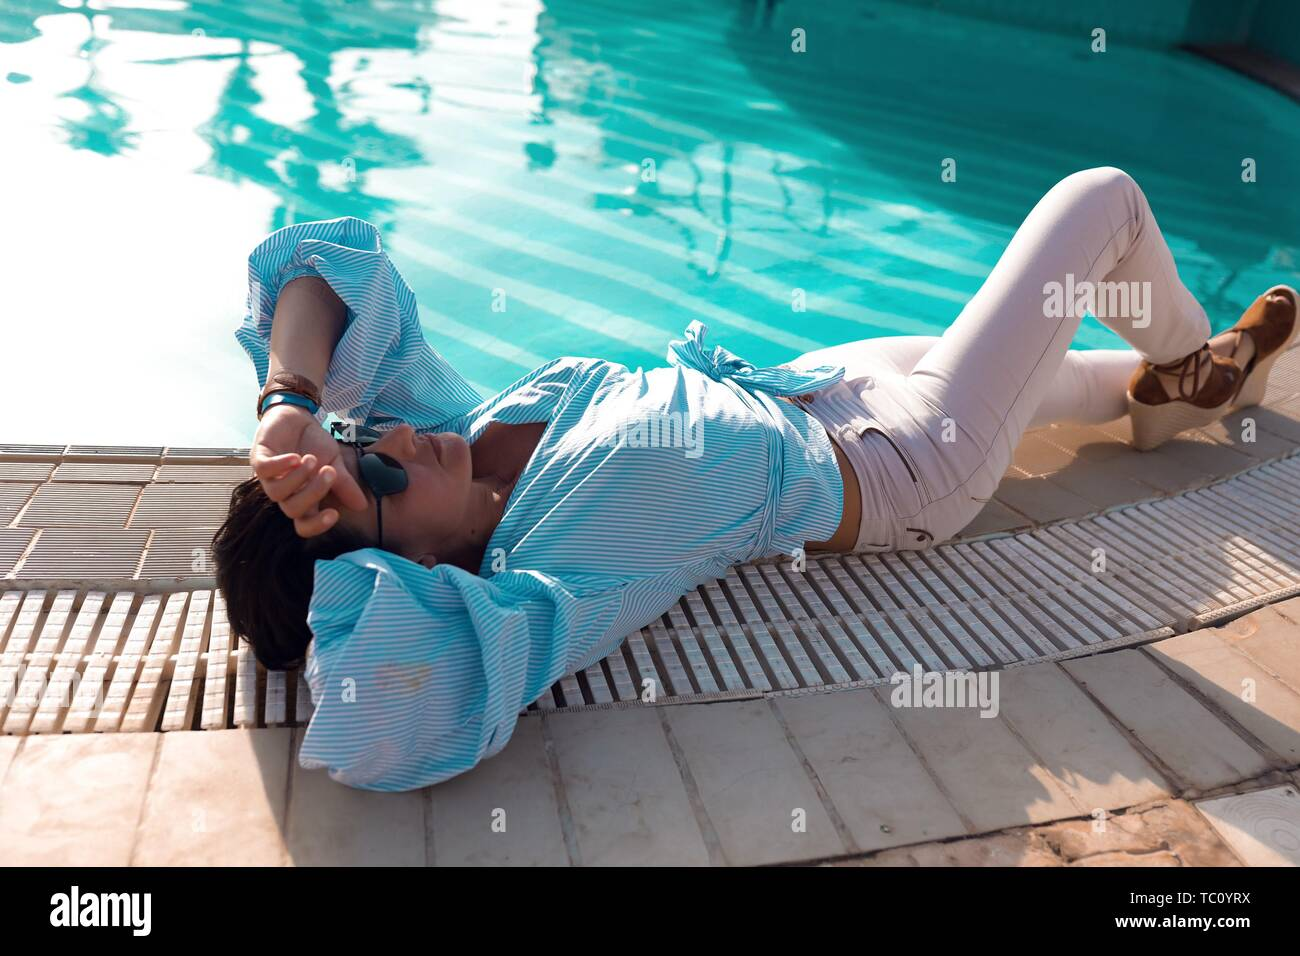 Slim young brunette relaxing outdoor near the pool with blue water. Lying on the floor, looking up to the sky. Wearing stylish white jeans and shirt Stock Photo